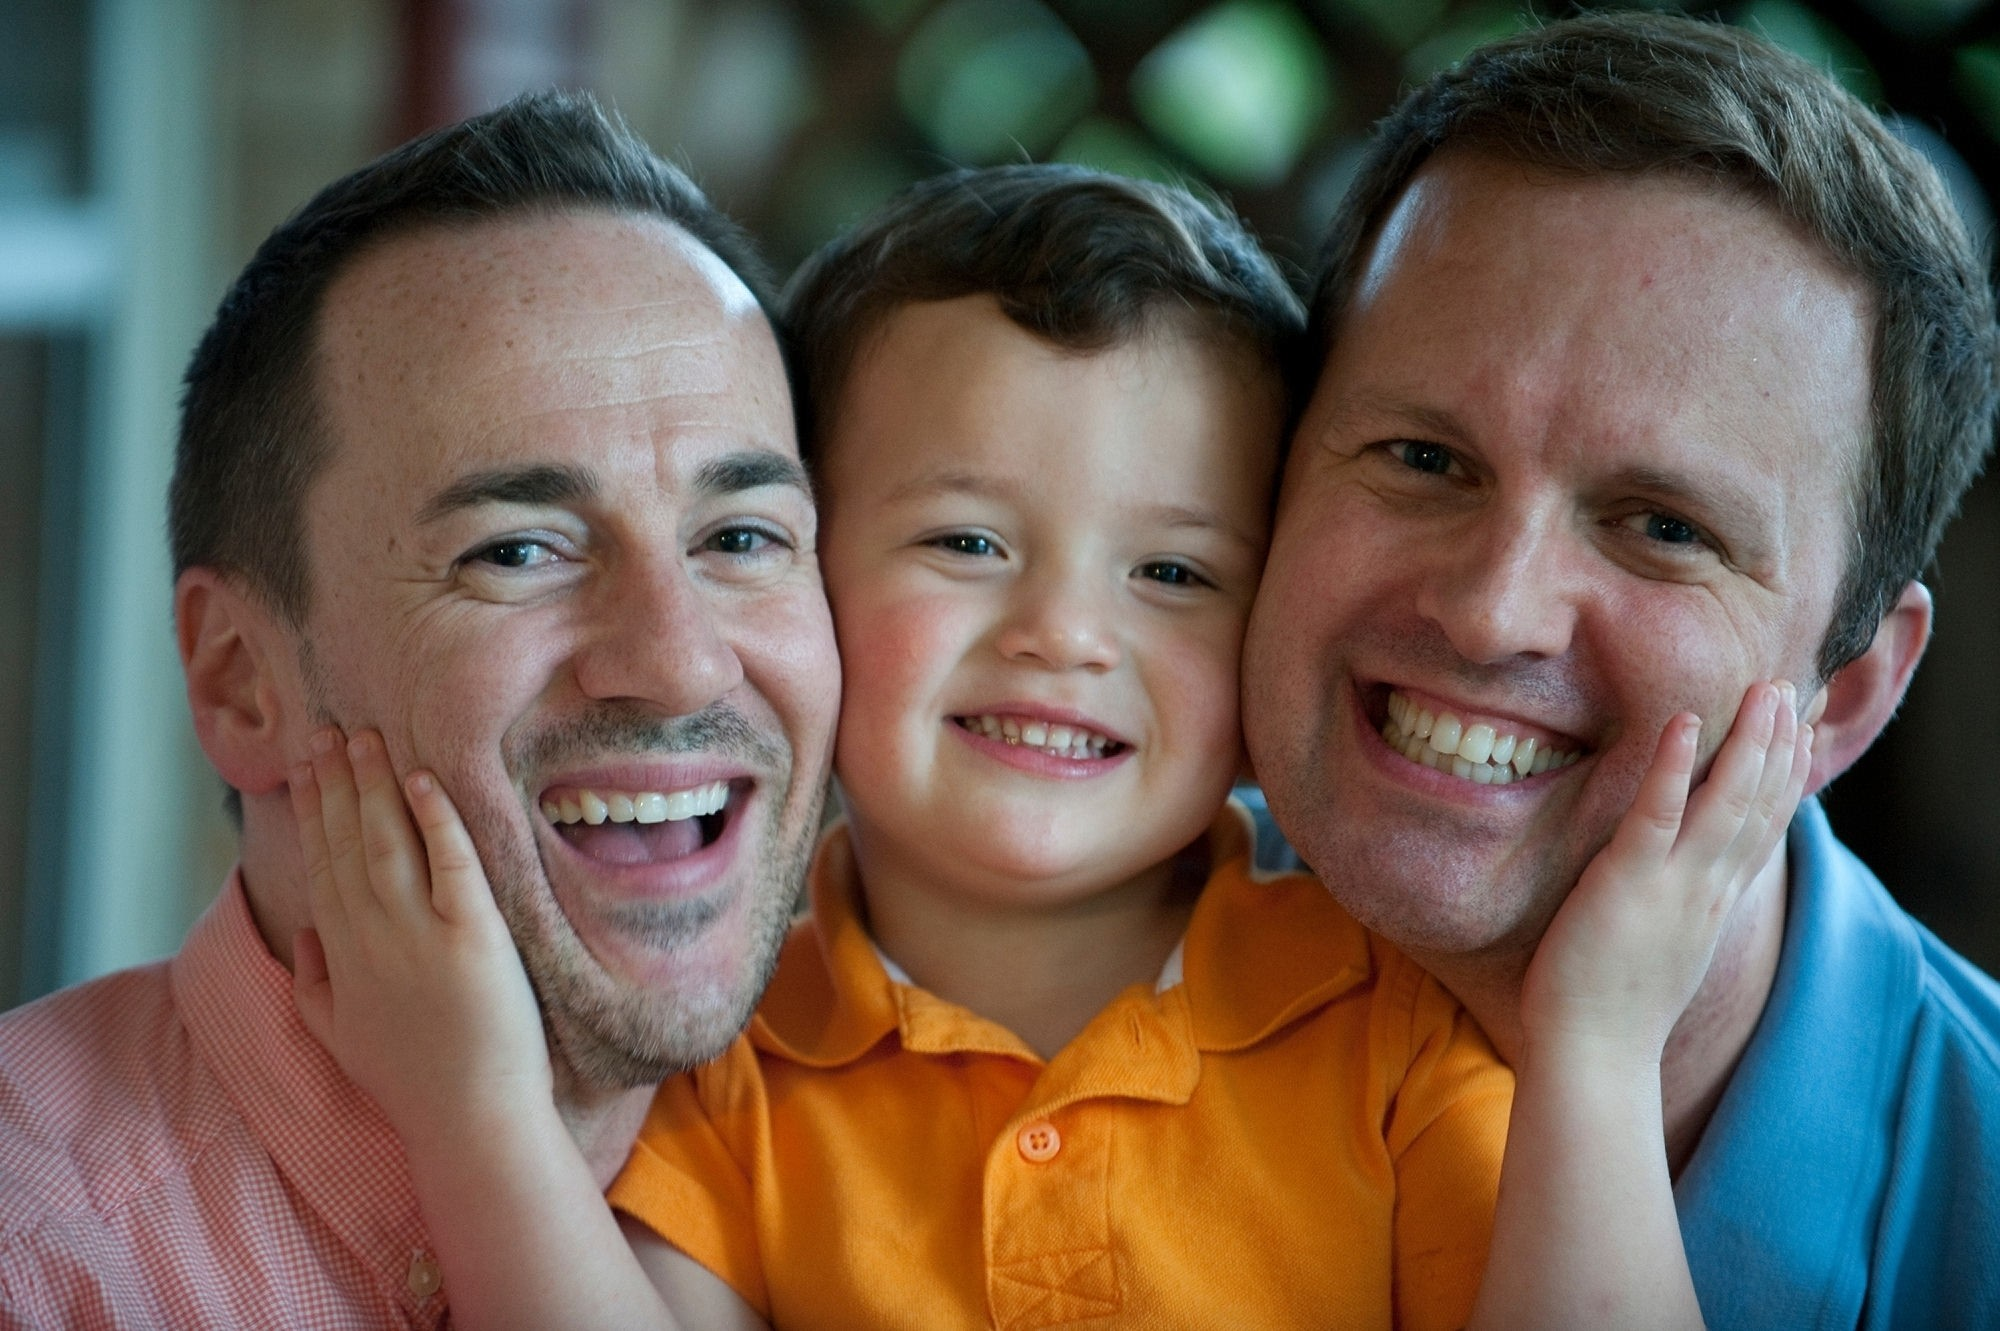 laws on gay adoption